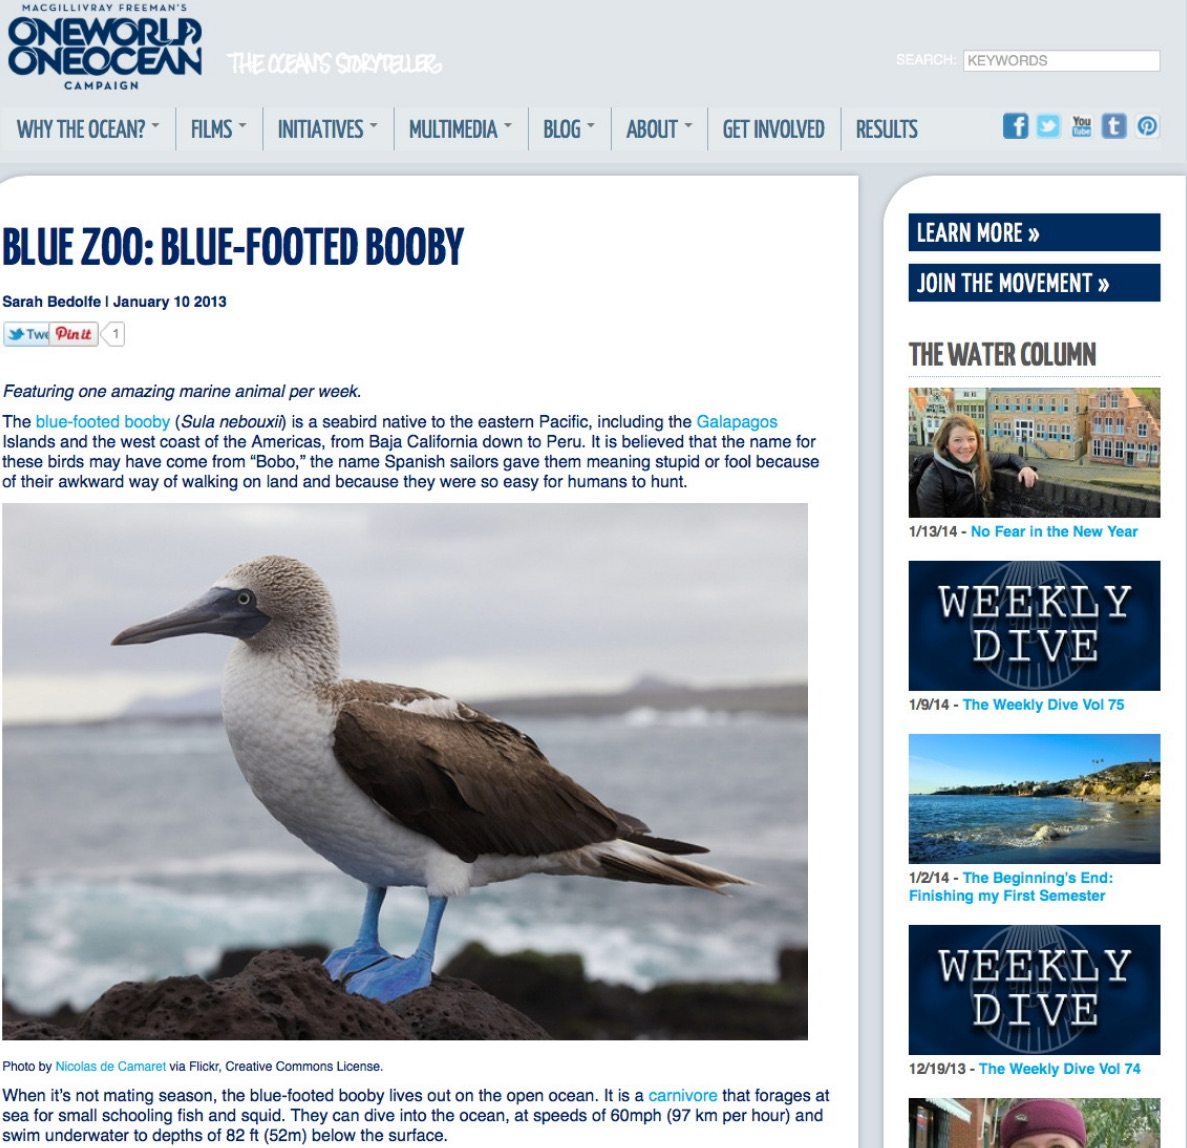 http://www.oneworldoneocean.com/blog/entry/blue_zoo_blue_footed_booby